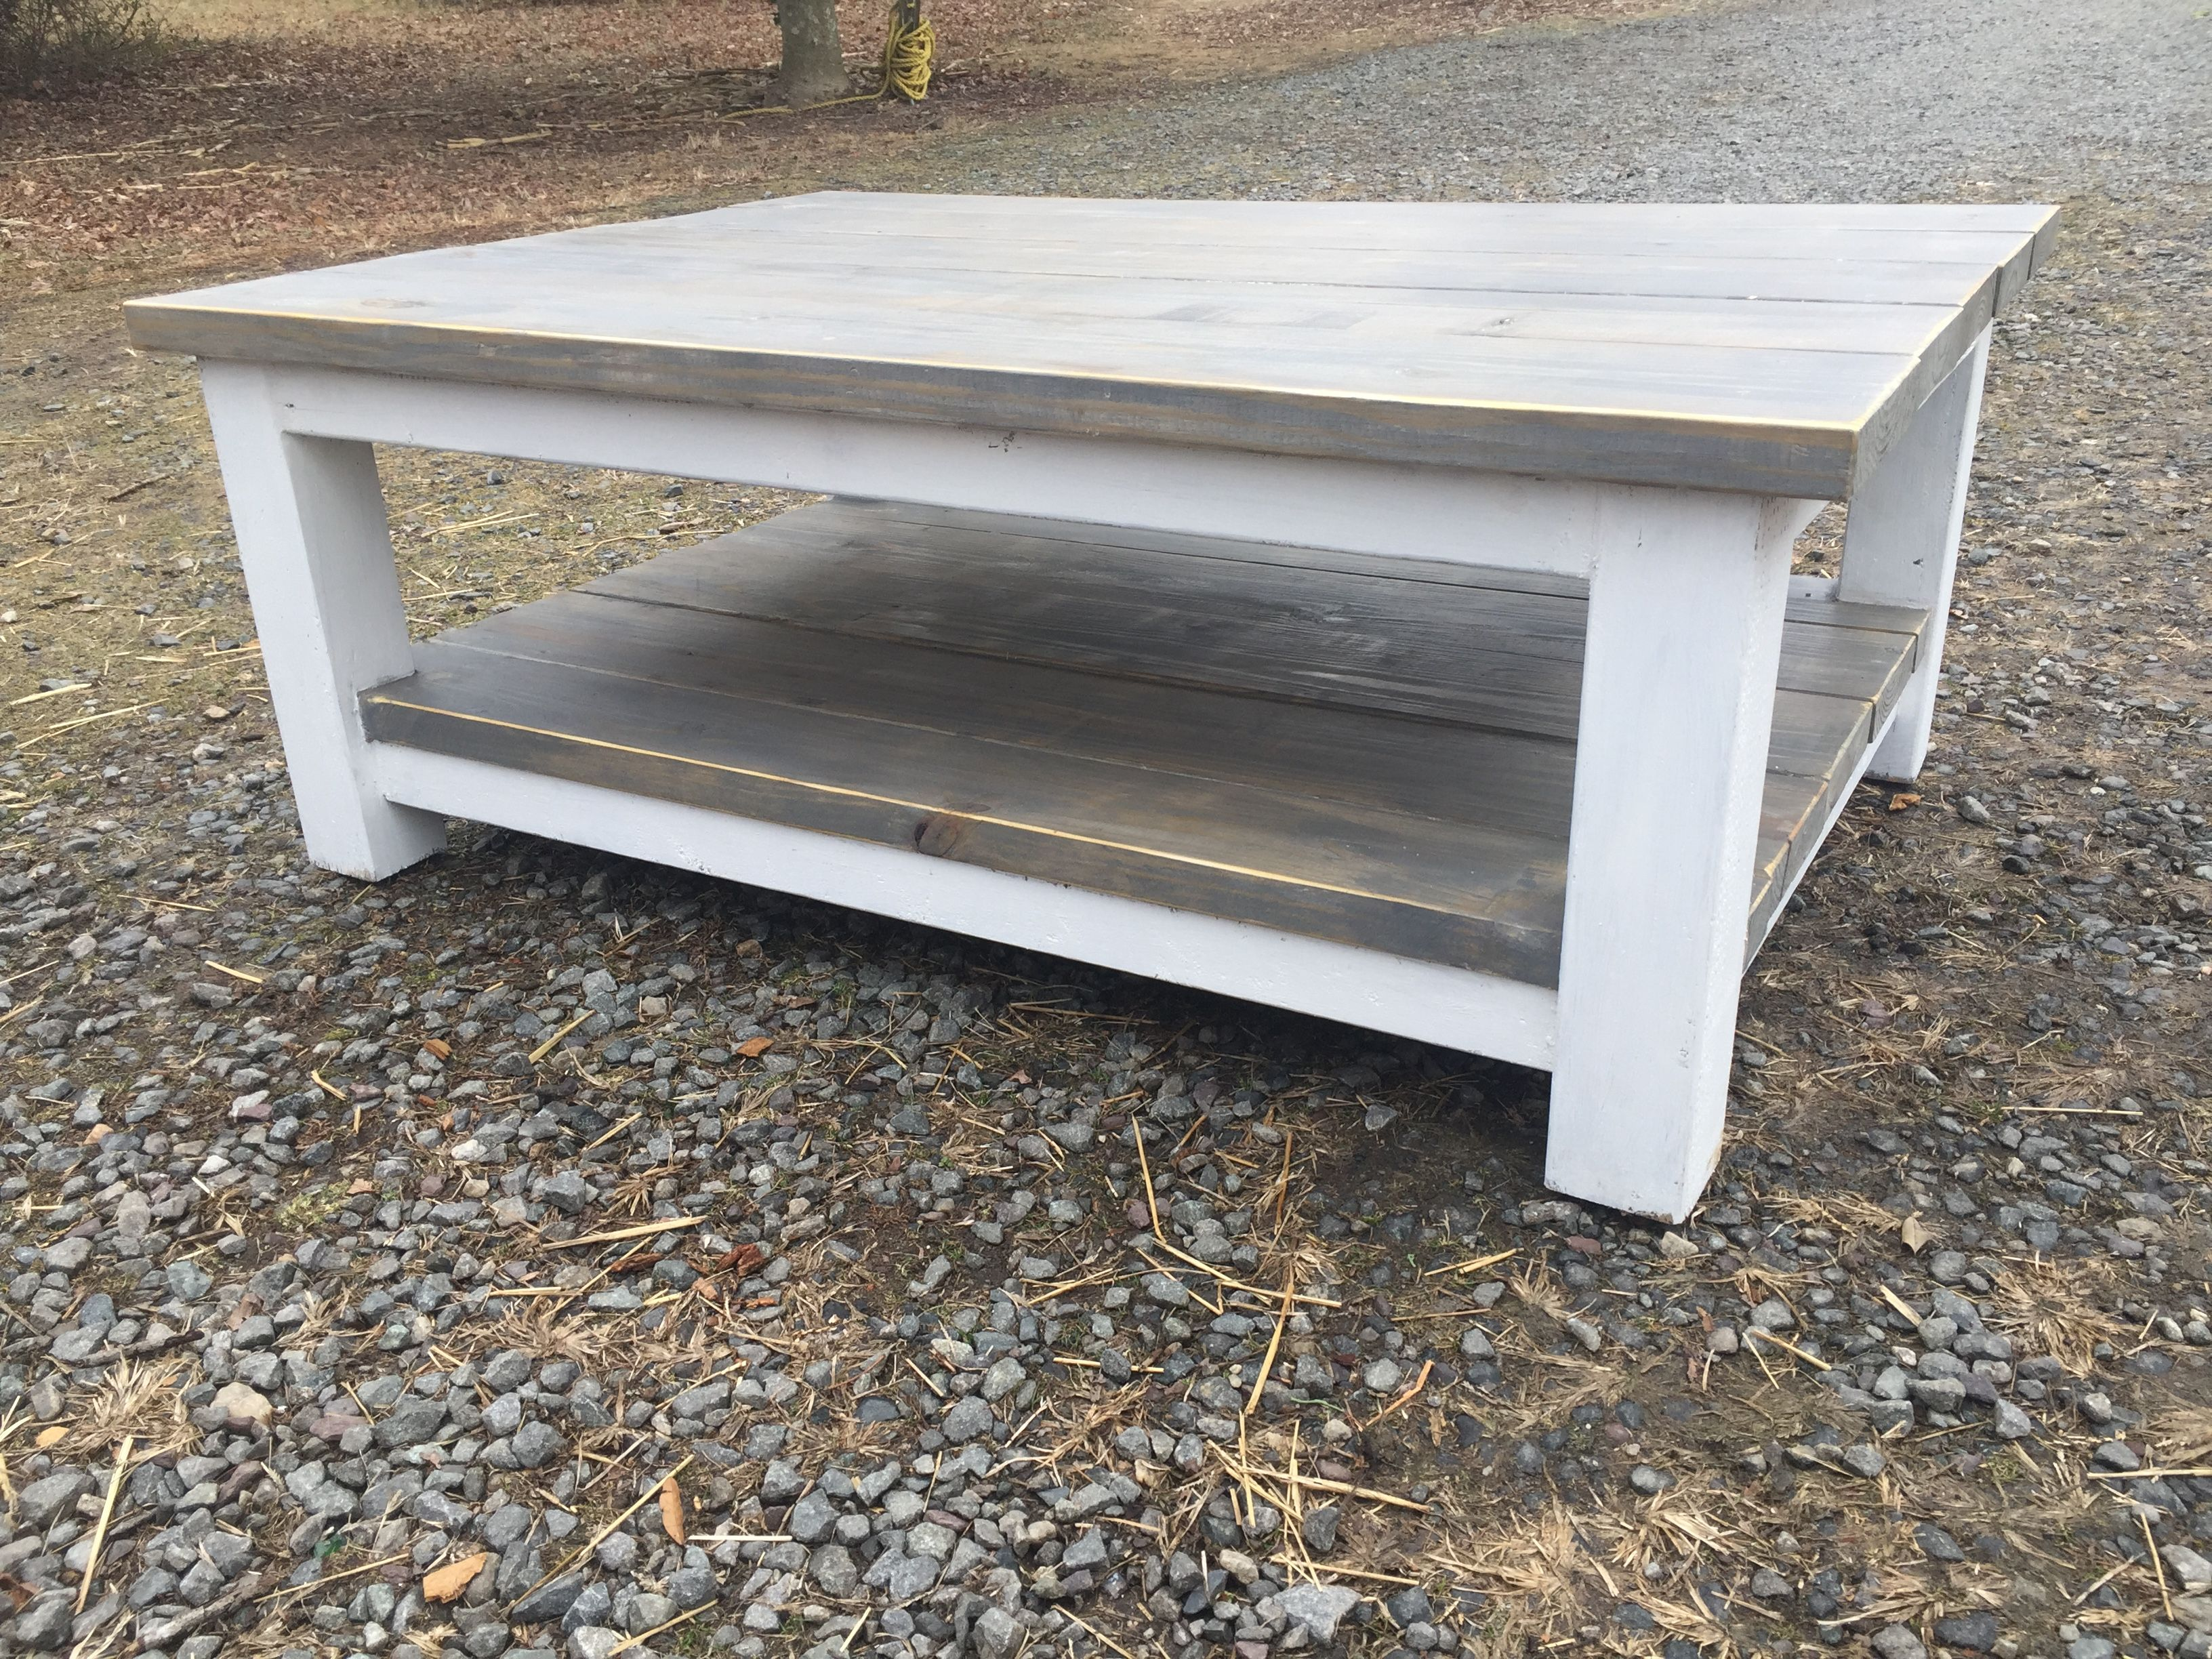 Large Farmhouse Coffee Table Stained Clic Grey With White Legs And Accents Beautiful